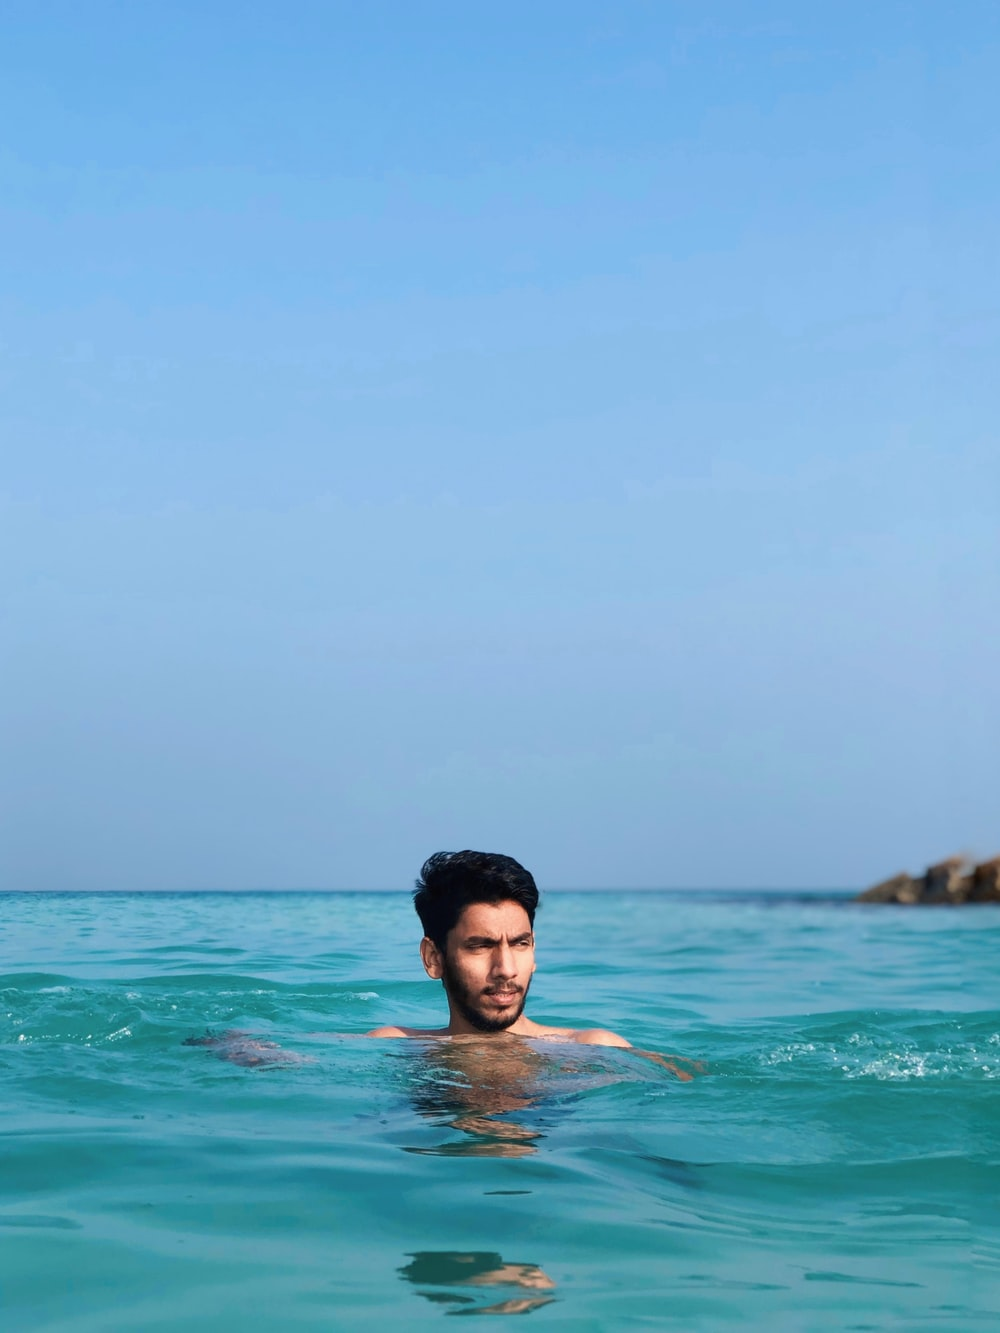 man in blue swimming trunks in sea during daytime